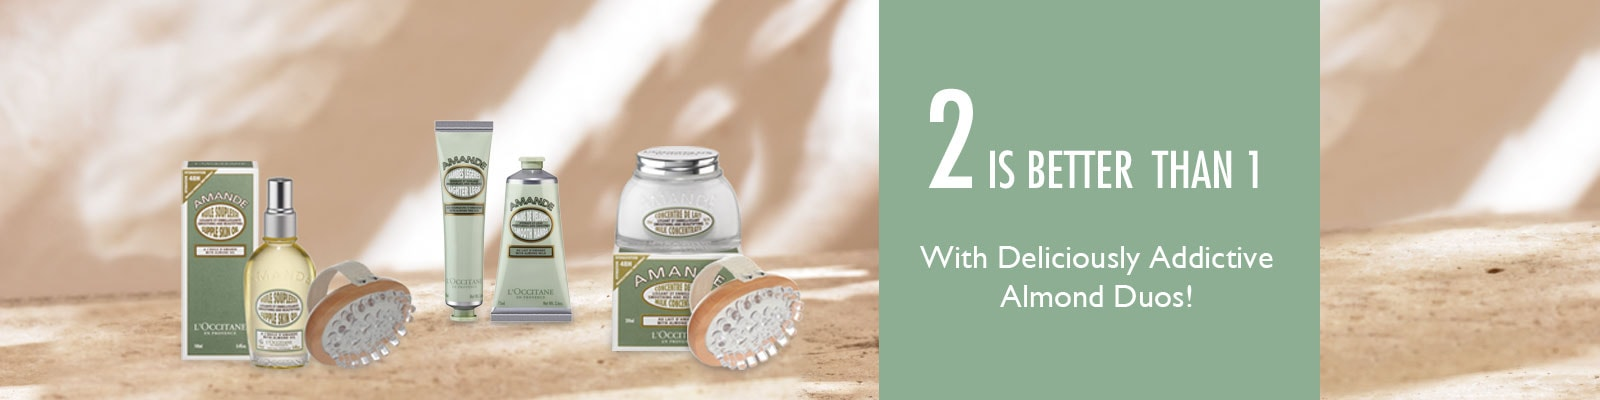 2 is better than 1 with deliciously addictive almond duos!